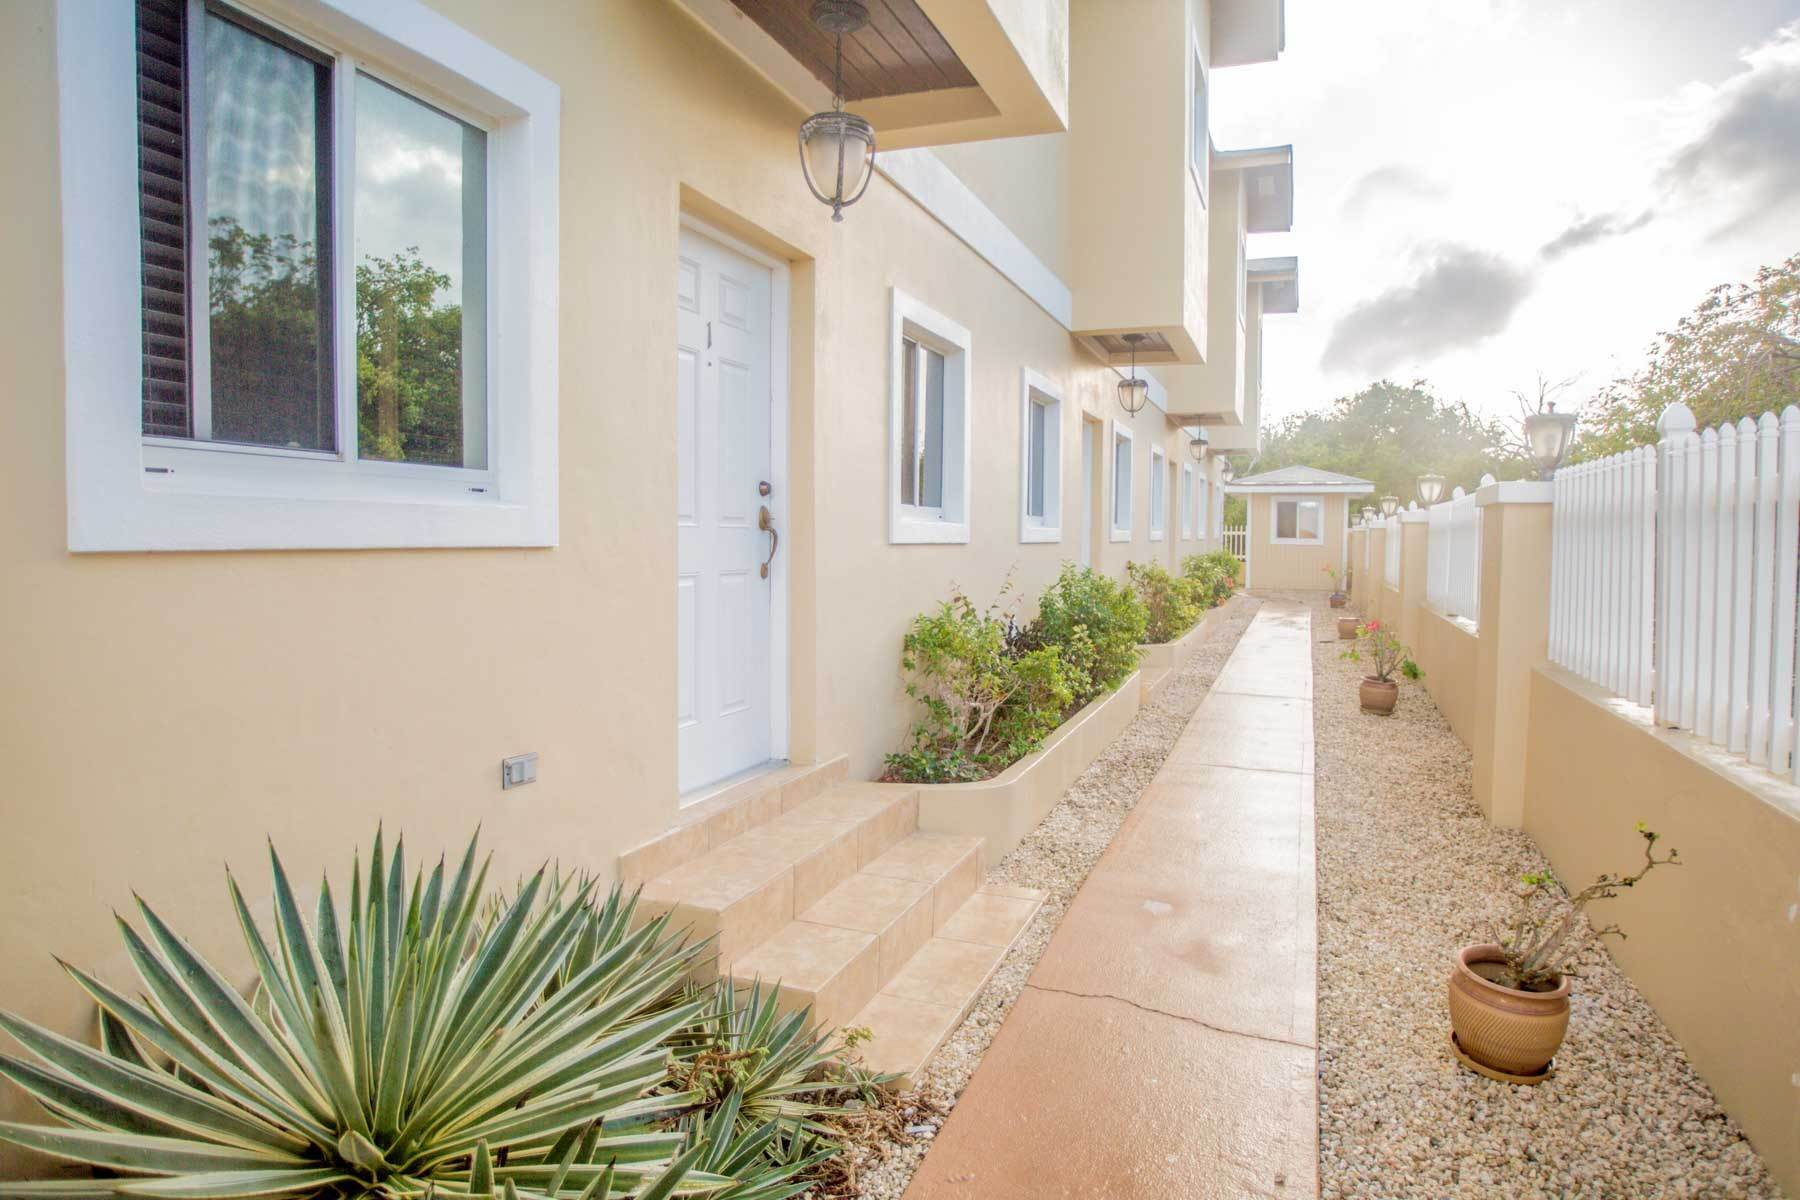 Co-op / Condo for Sale at Unique Discovery Villas (4 UNITS) - MLS 39760 George Town, Exuma, Bahamas